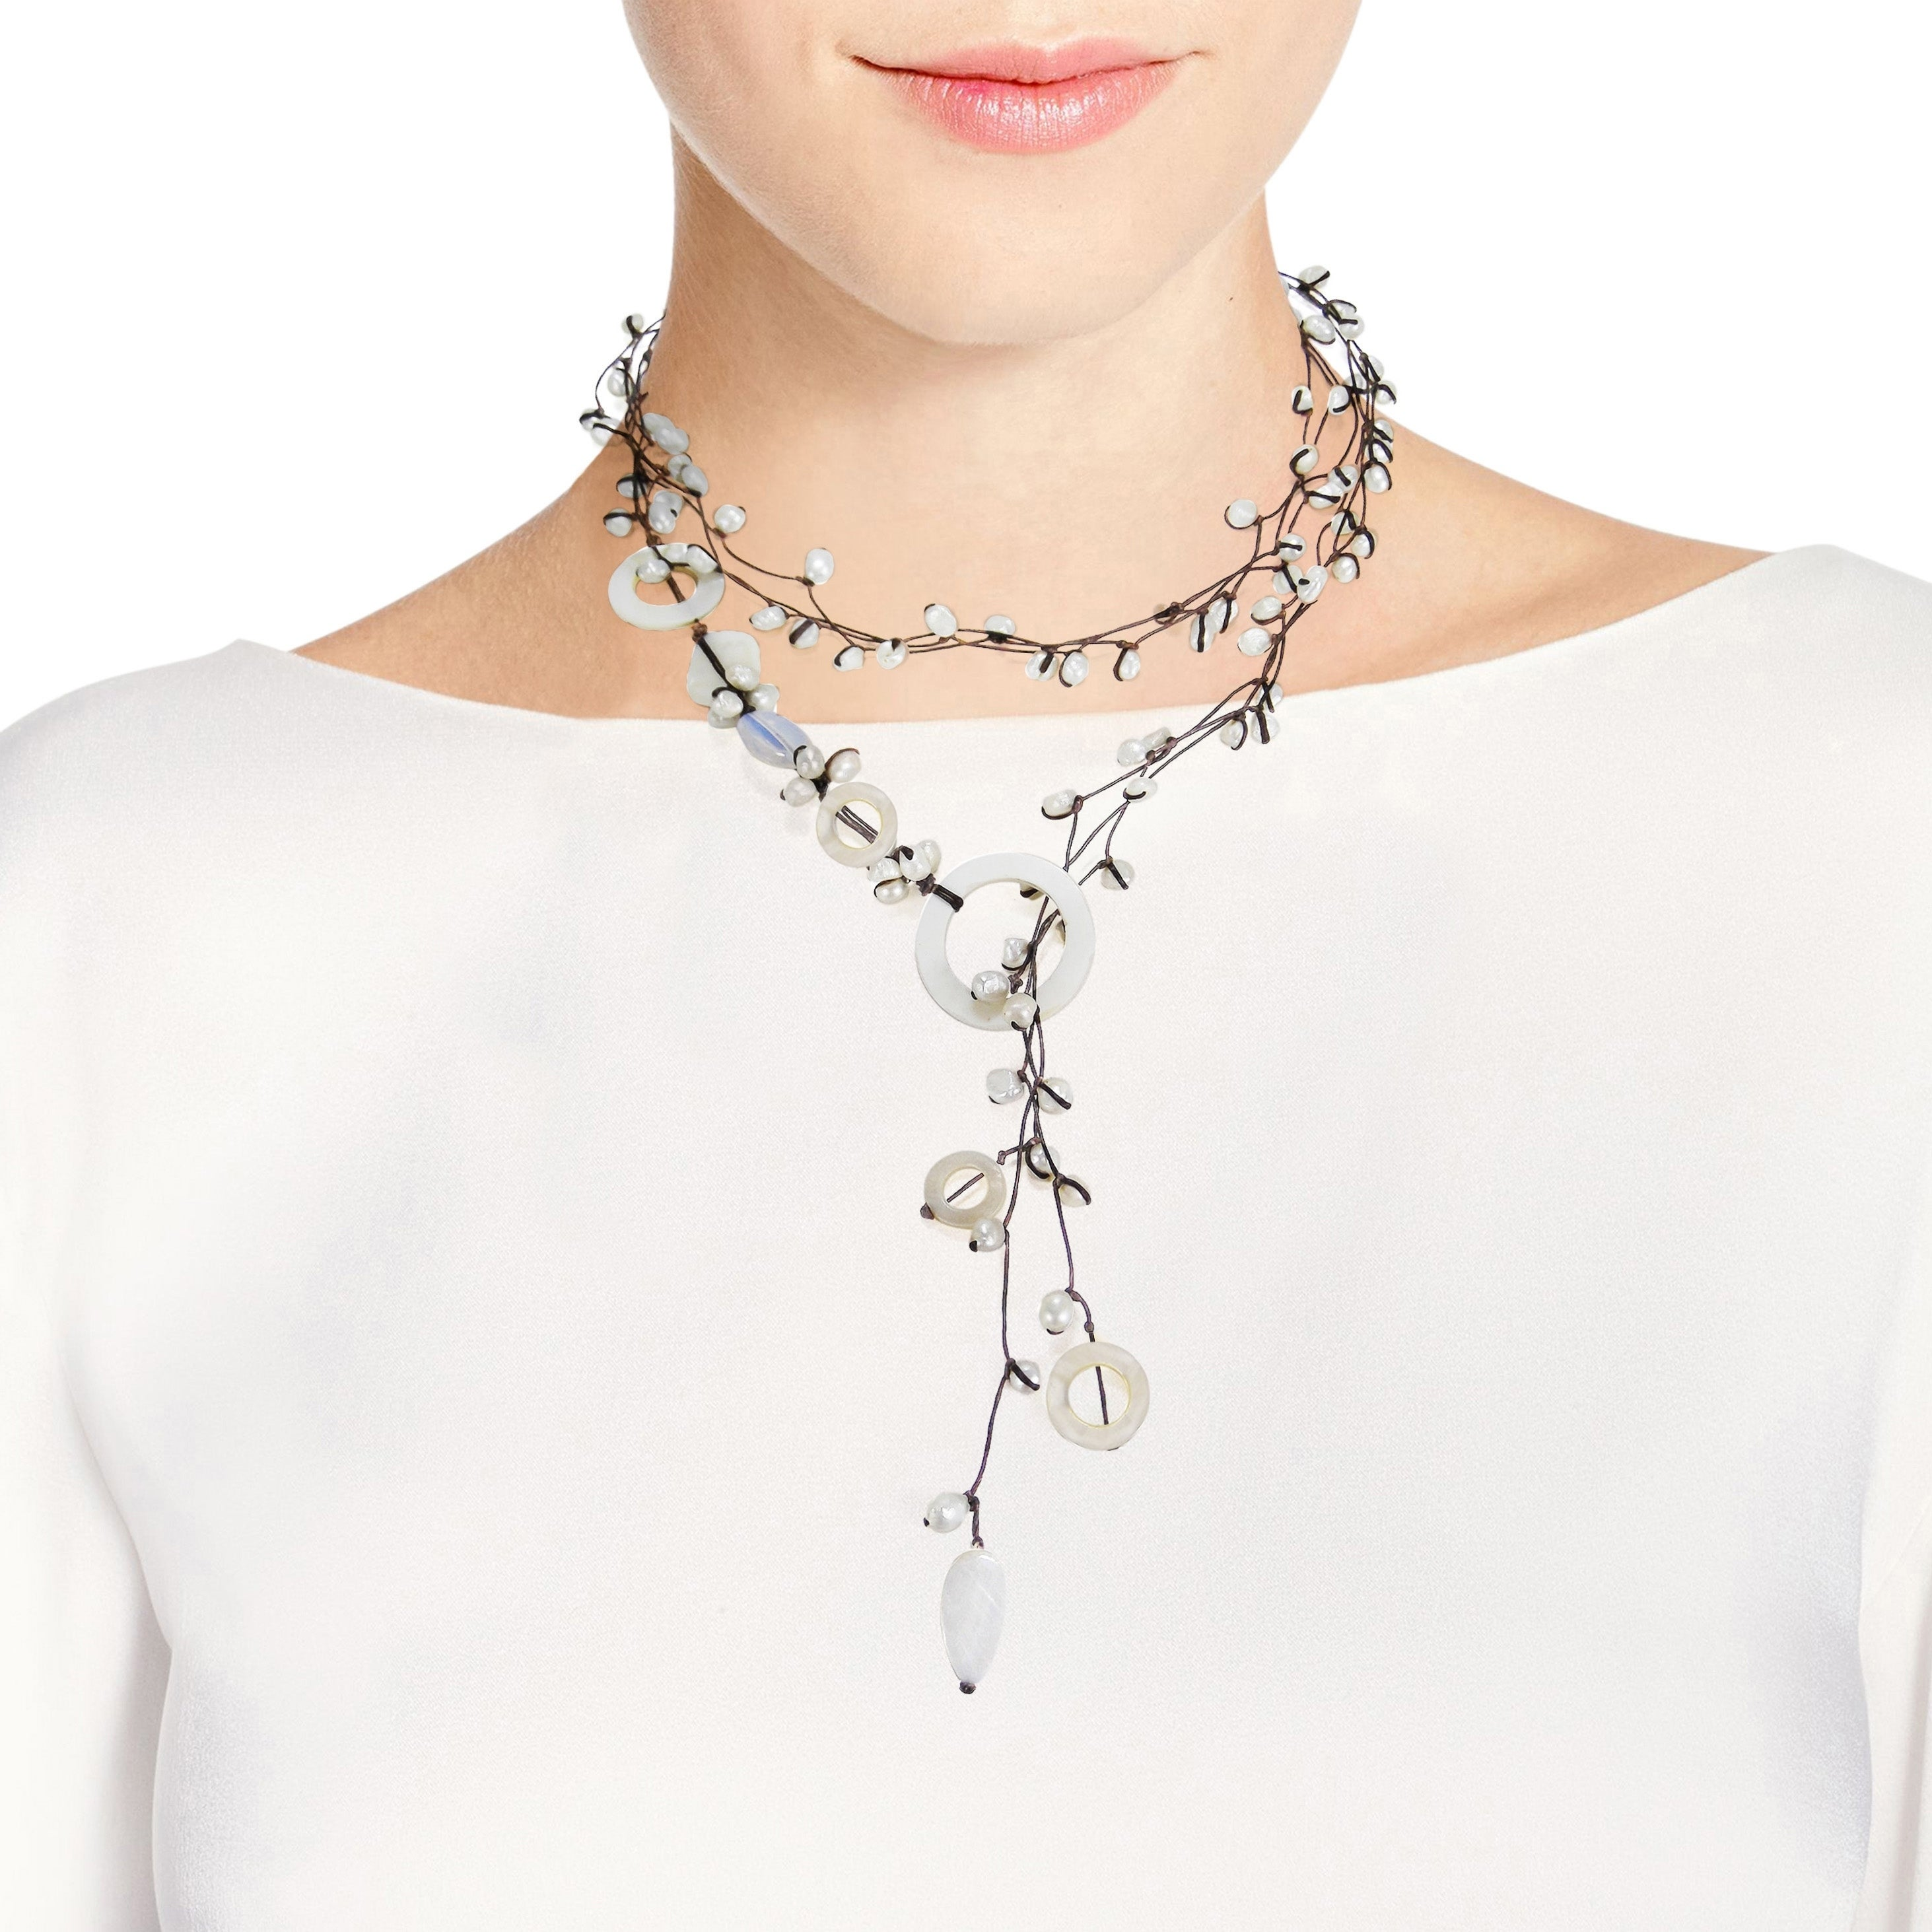 ba5b843bc2d Shop Handmade Cotton Pearl Quartz Mother of Pearl Wrap Lariat Necklace - On  Sale - Free Shipping Today - Overstock - 5141314